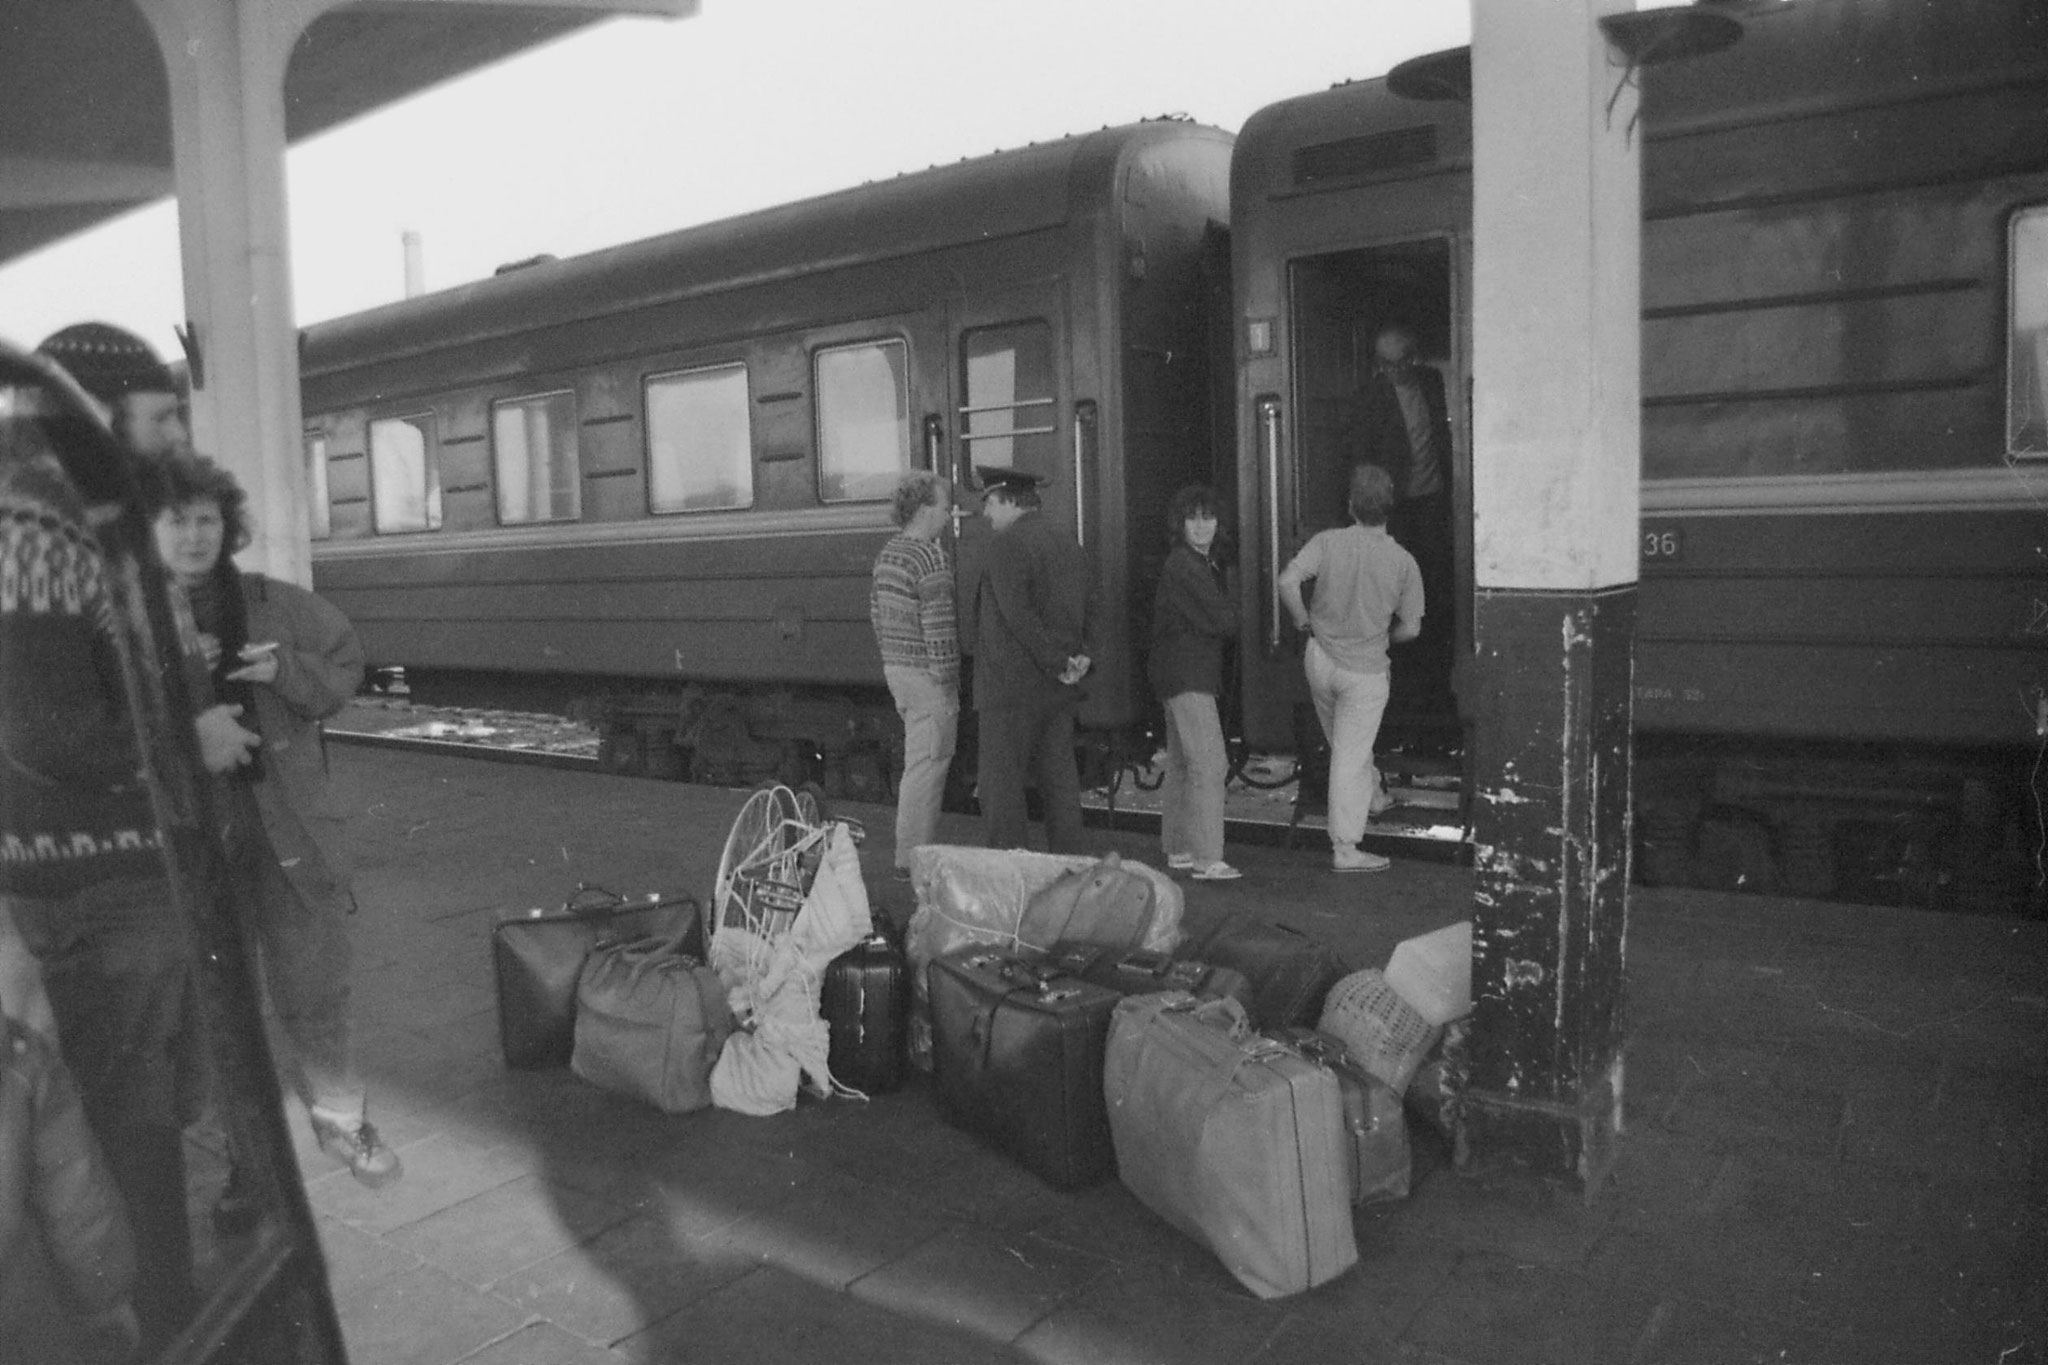 27/10/1988: 22: luggage from one compartment (3 adults and 2 children)